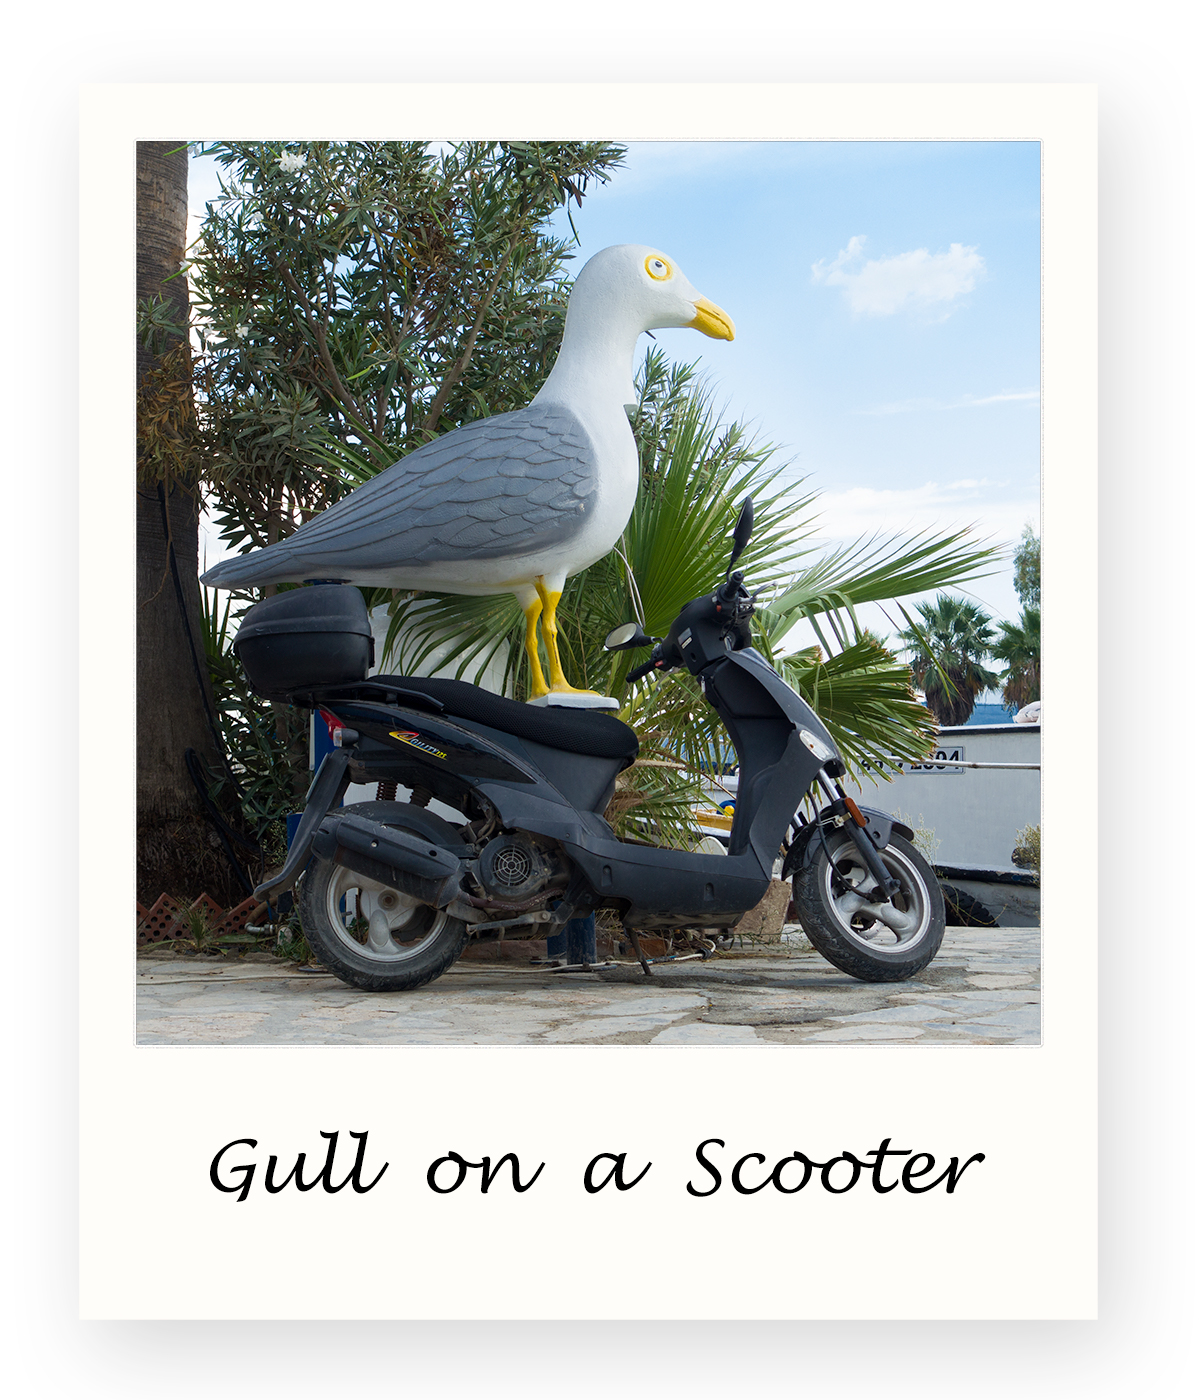 Gull-on-a-Scooter